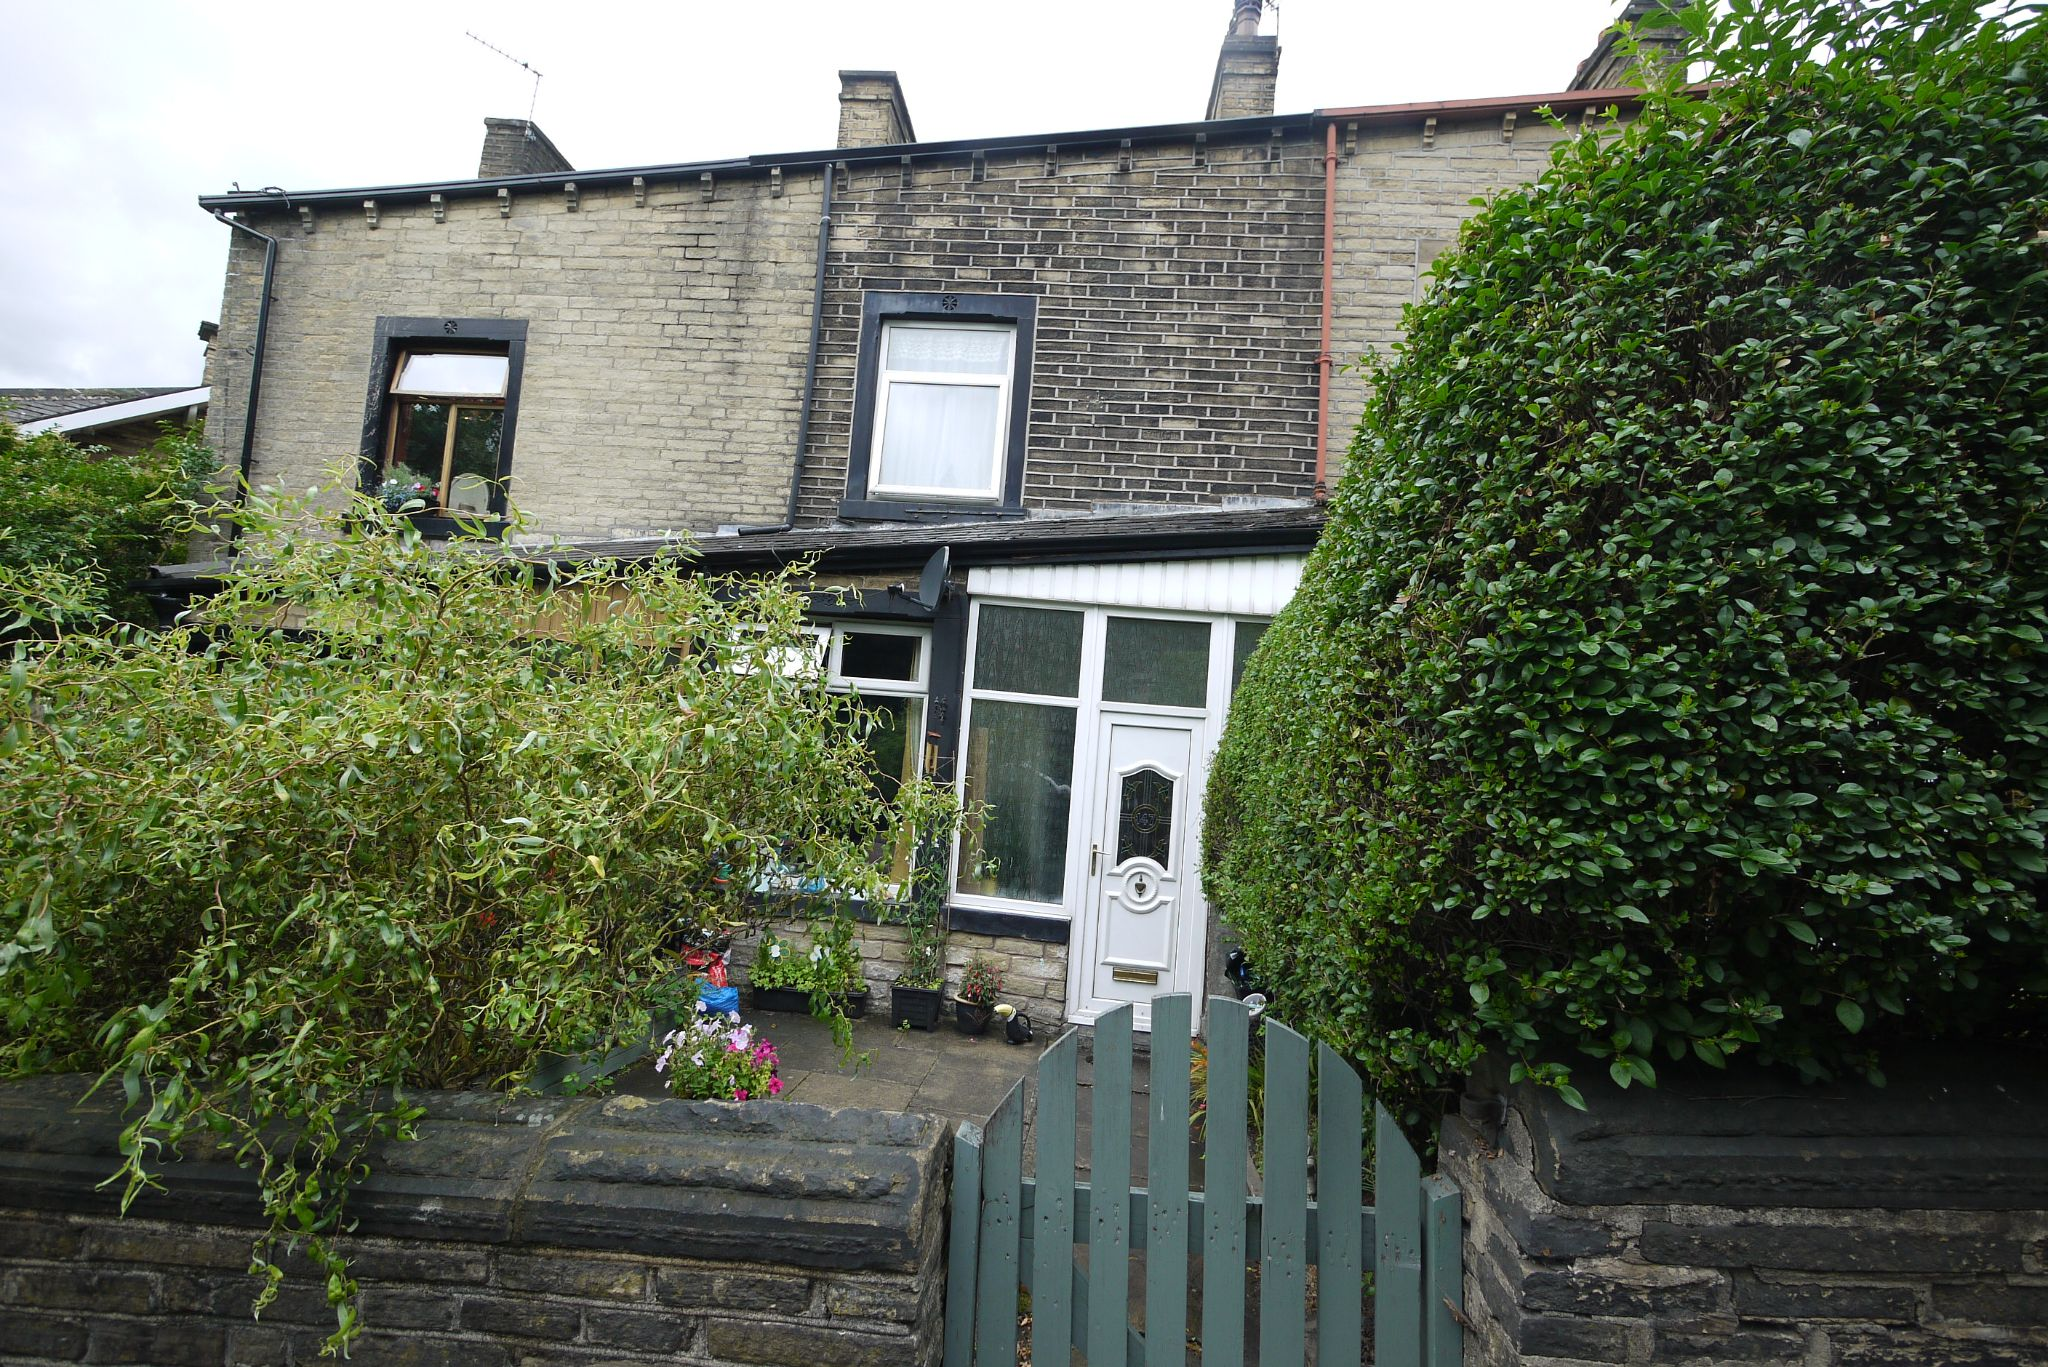 3 bedroom mid terraced house SSTC in Sowerby Bridge - Photograph 1.